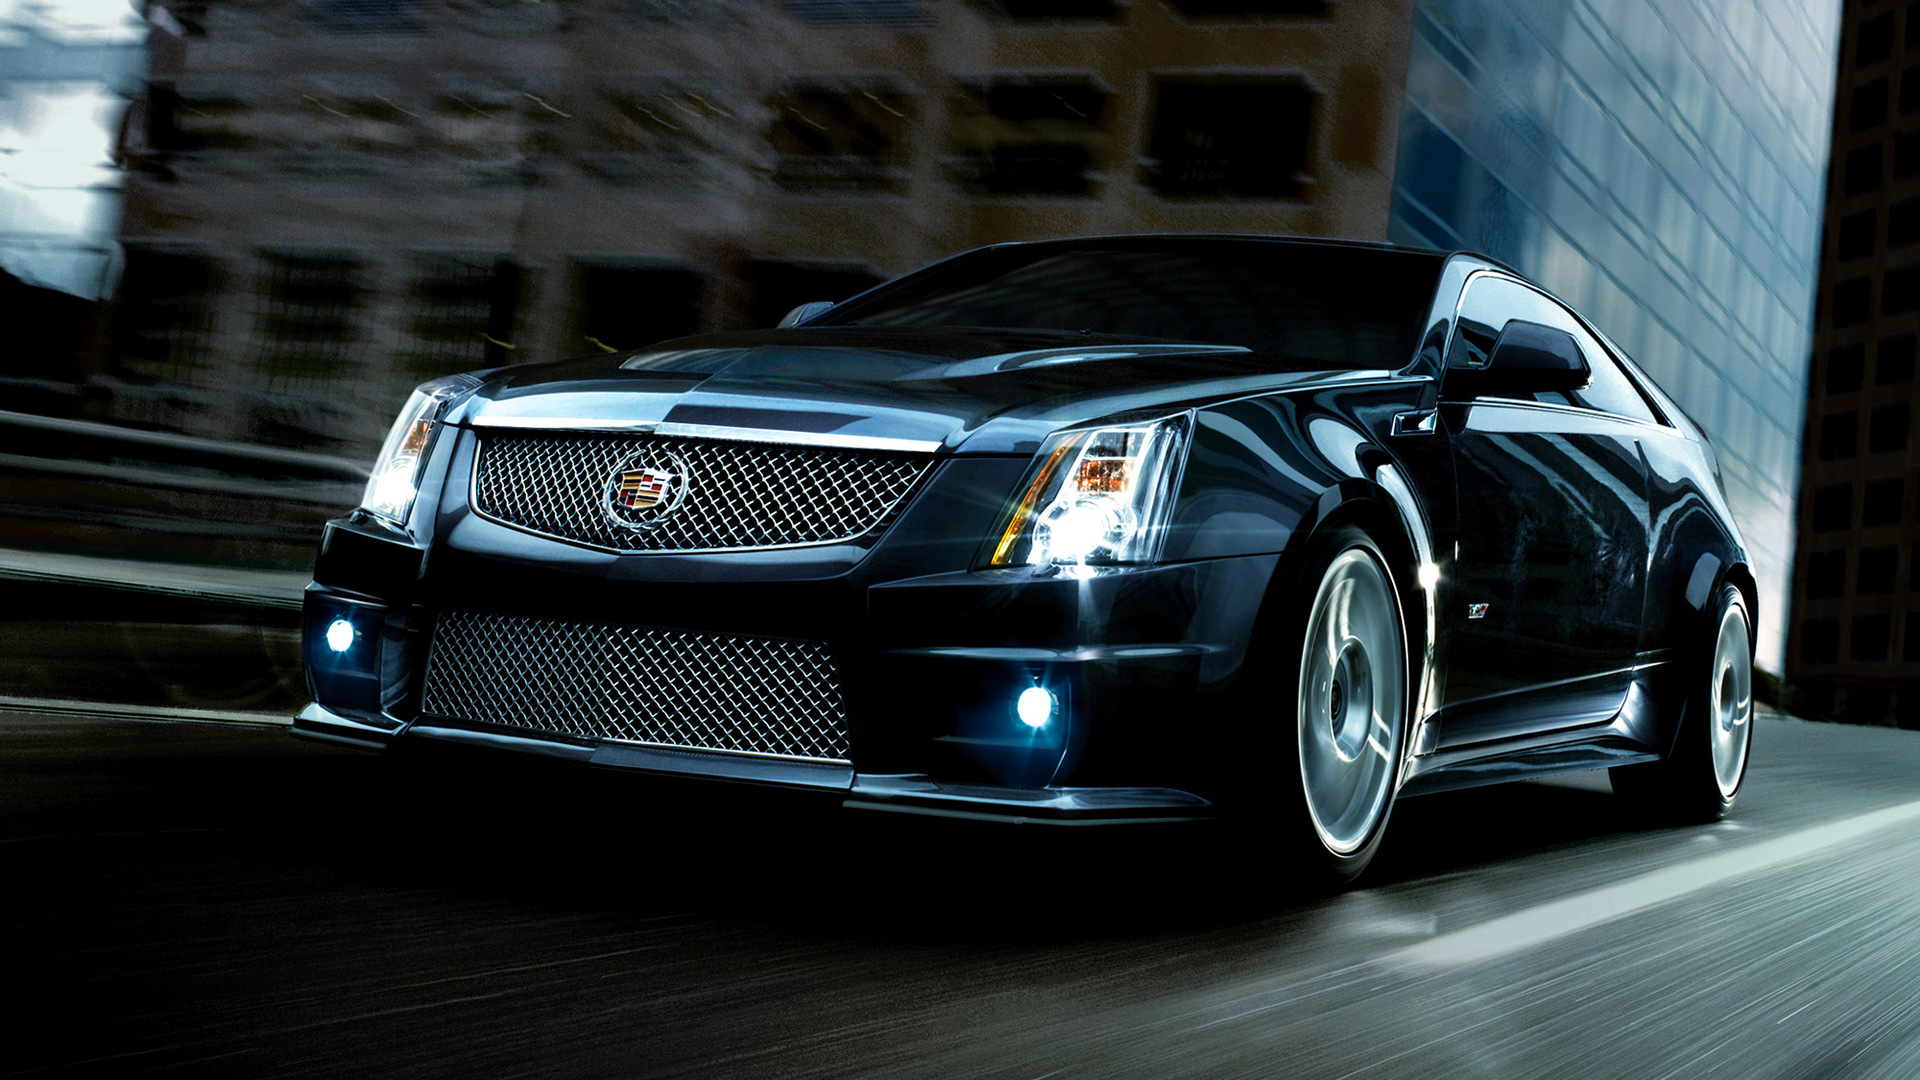 2010 Cadillac Cts V Coupe Wallpapers And Hd Images Car